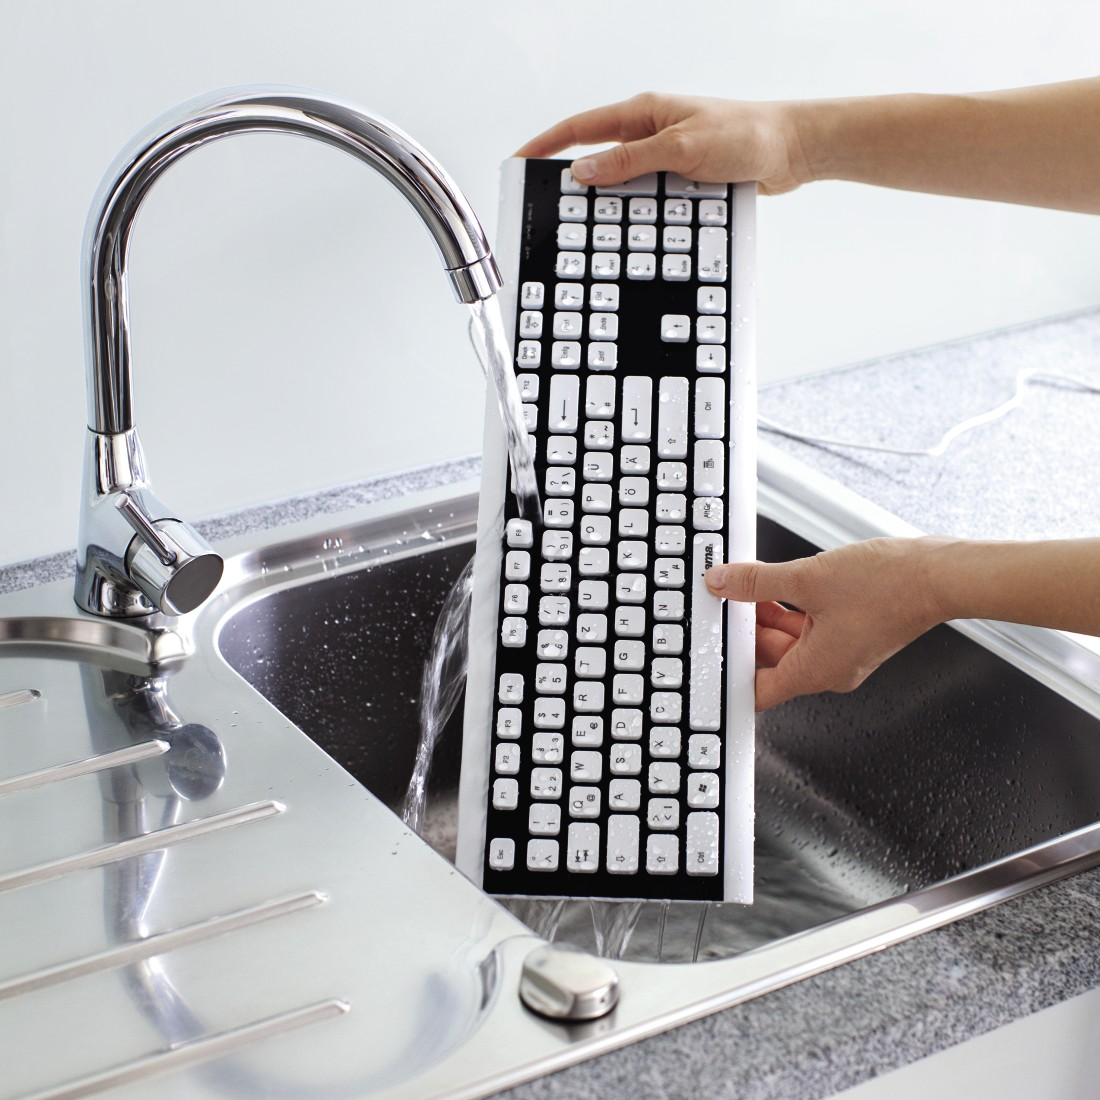 awx High-Res Appliance - Hama, Covo Keyboard, Water-Resistant, Cabled, black/white